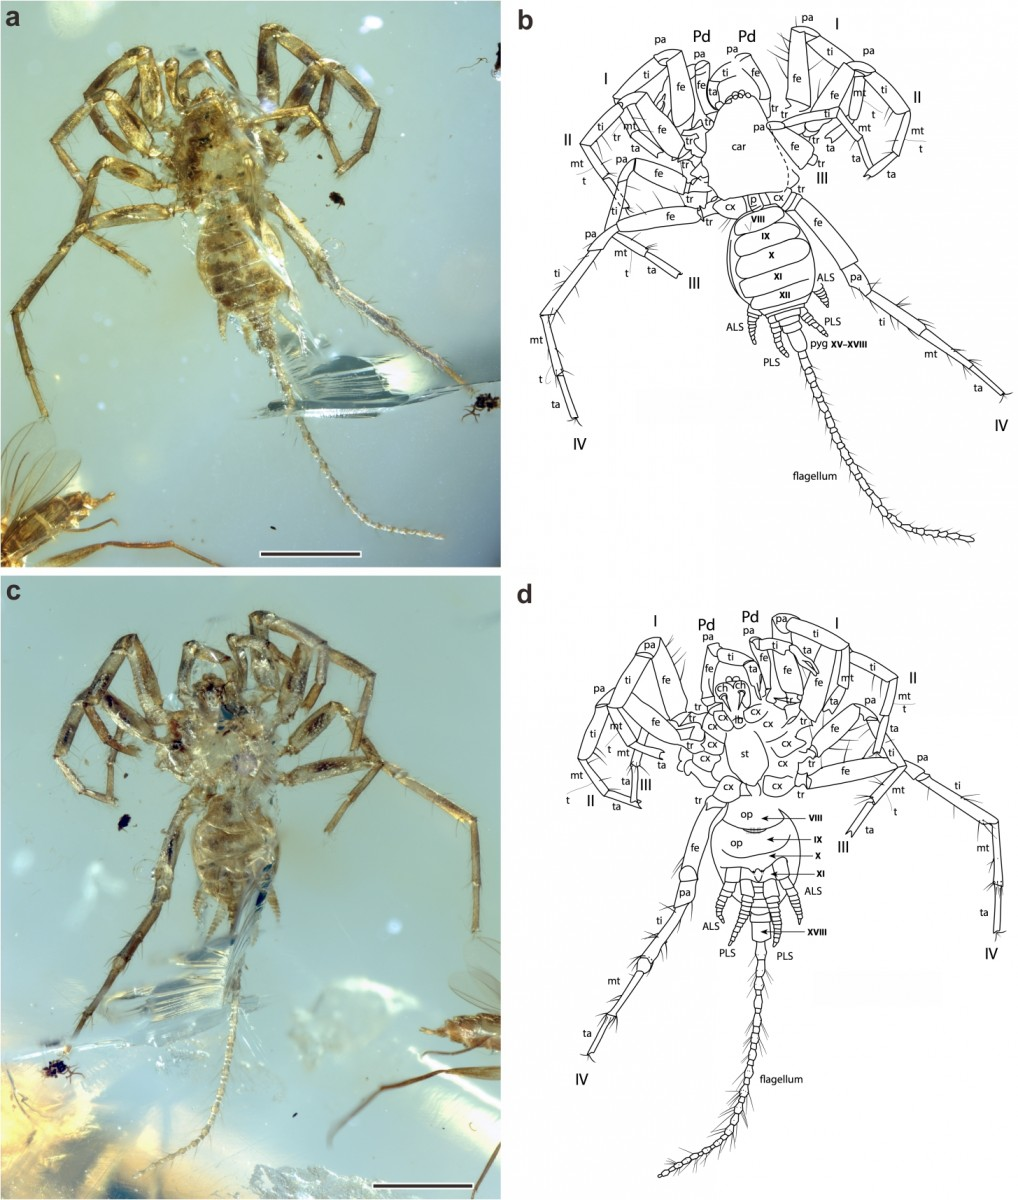 In Myanmar, Scientists Find an Ancient Spider With a Whip-Like Tail